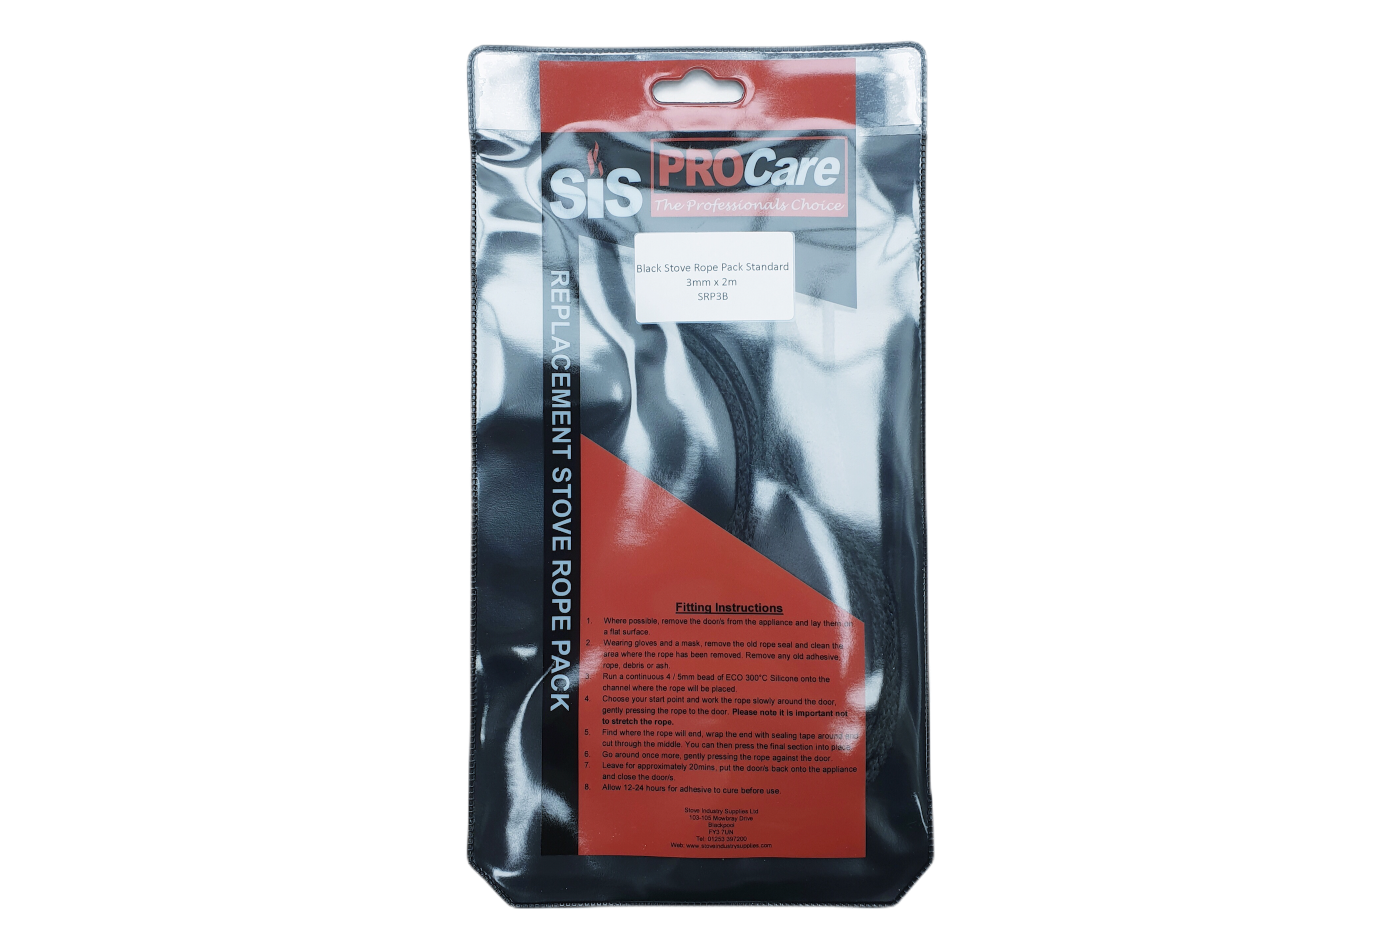 SiS Procare Black 3 milimetre x 2 metre Standard Stove Rope Pack - product code SRP3B